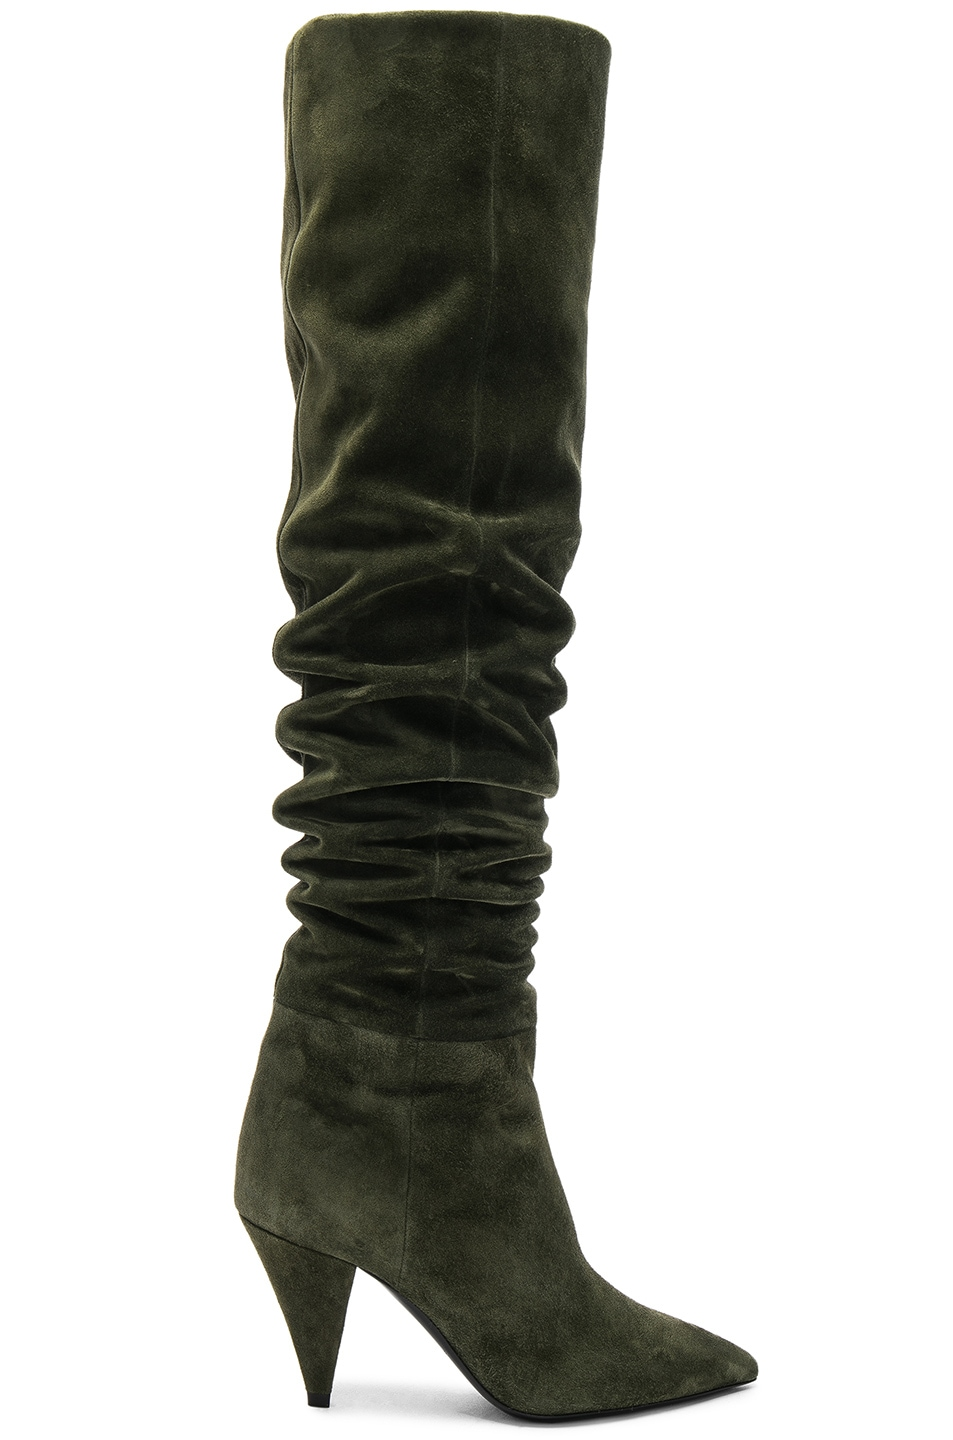 Saint LaurentSuede Era Heeled Thigh High Boots in . 4poBQful